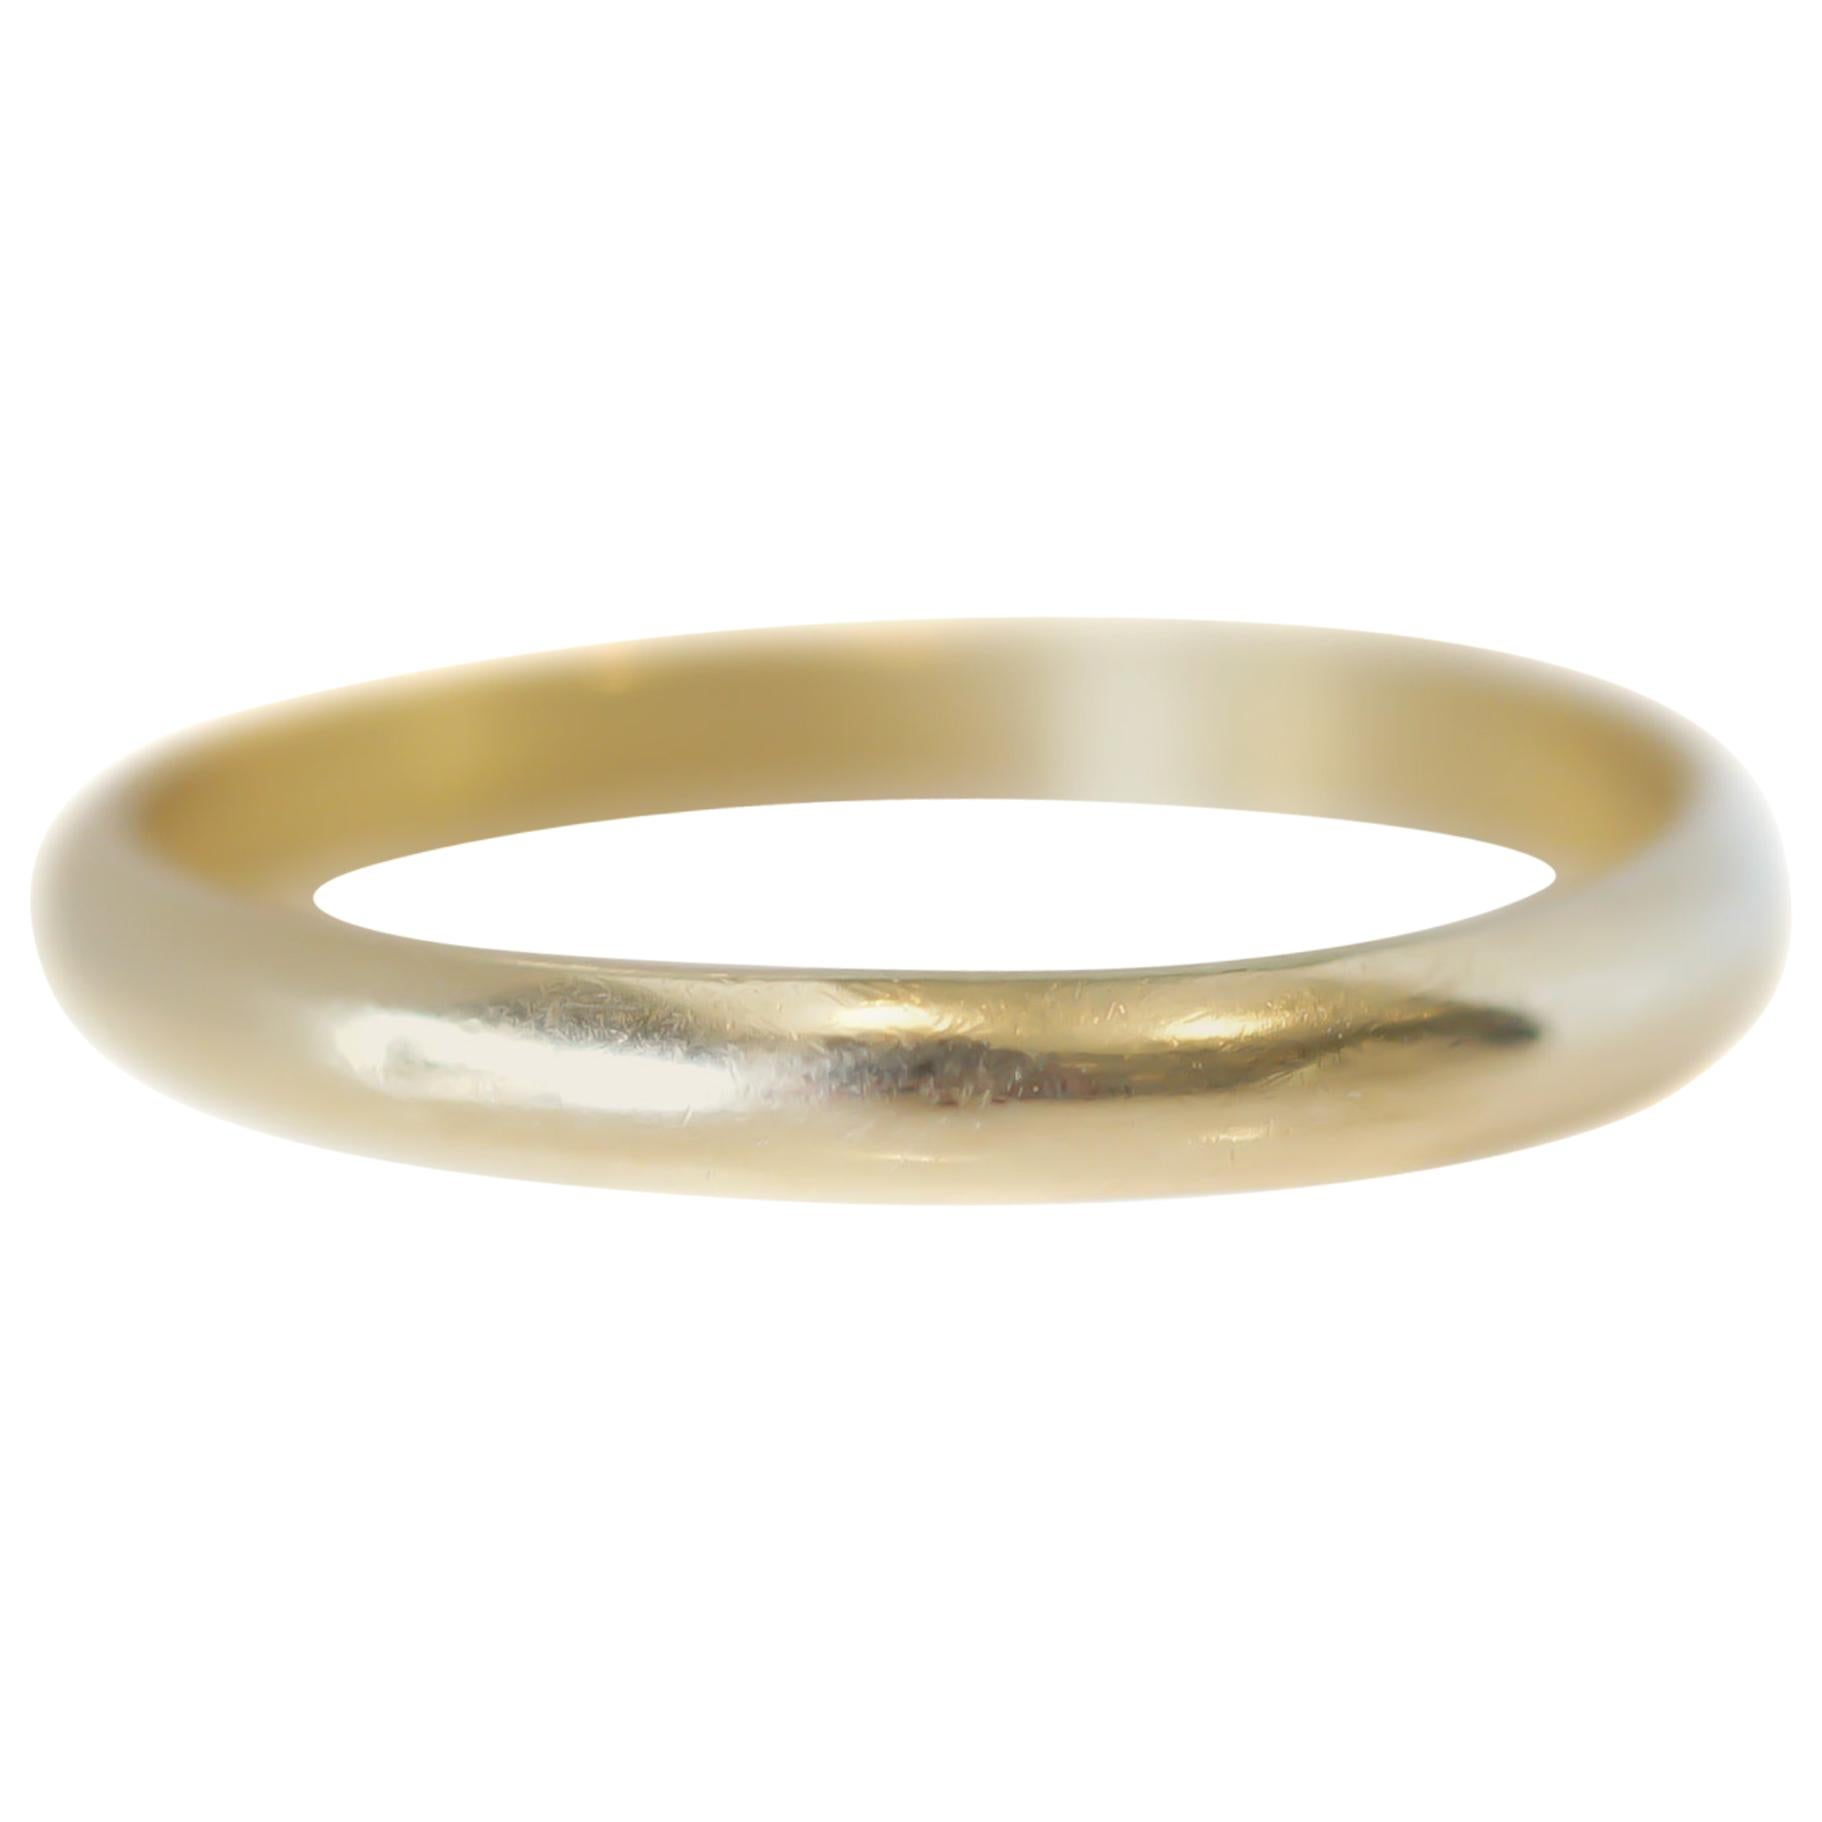 Antique Baby Ring Engraved Baby Band Baby Ring Etched Gold Baby Ring Art Deco Gold Band Art Deco Yellow Gold Band Gold Stacking Band